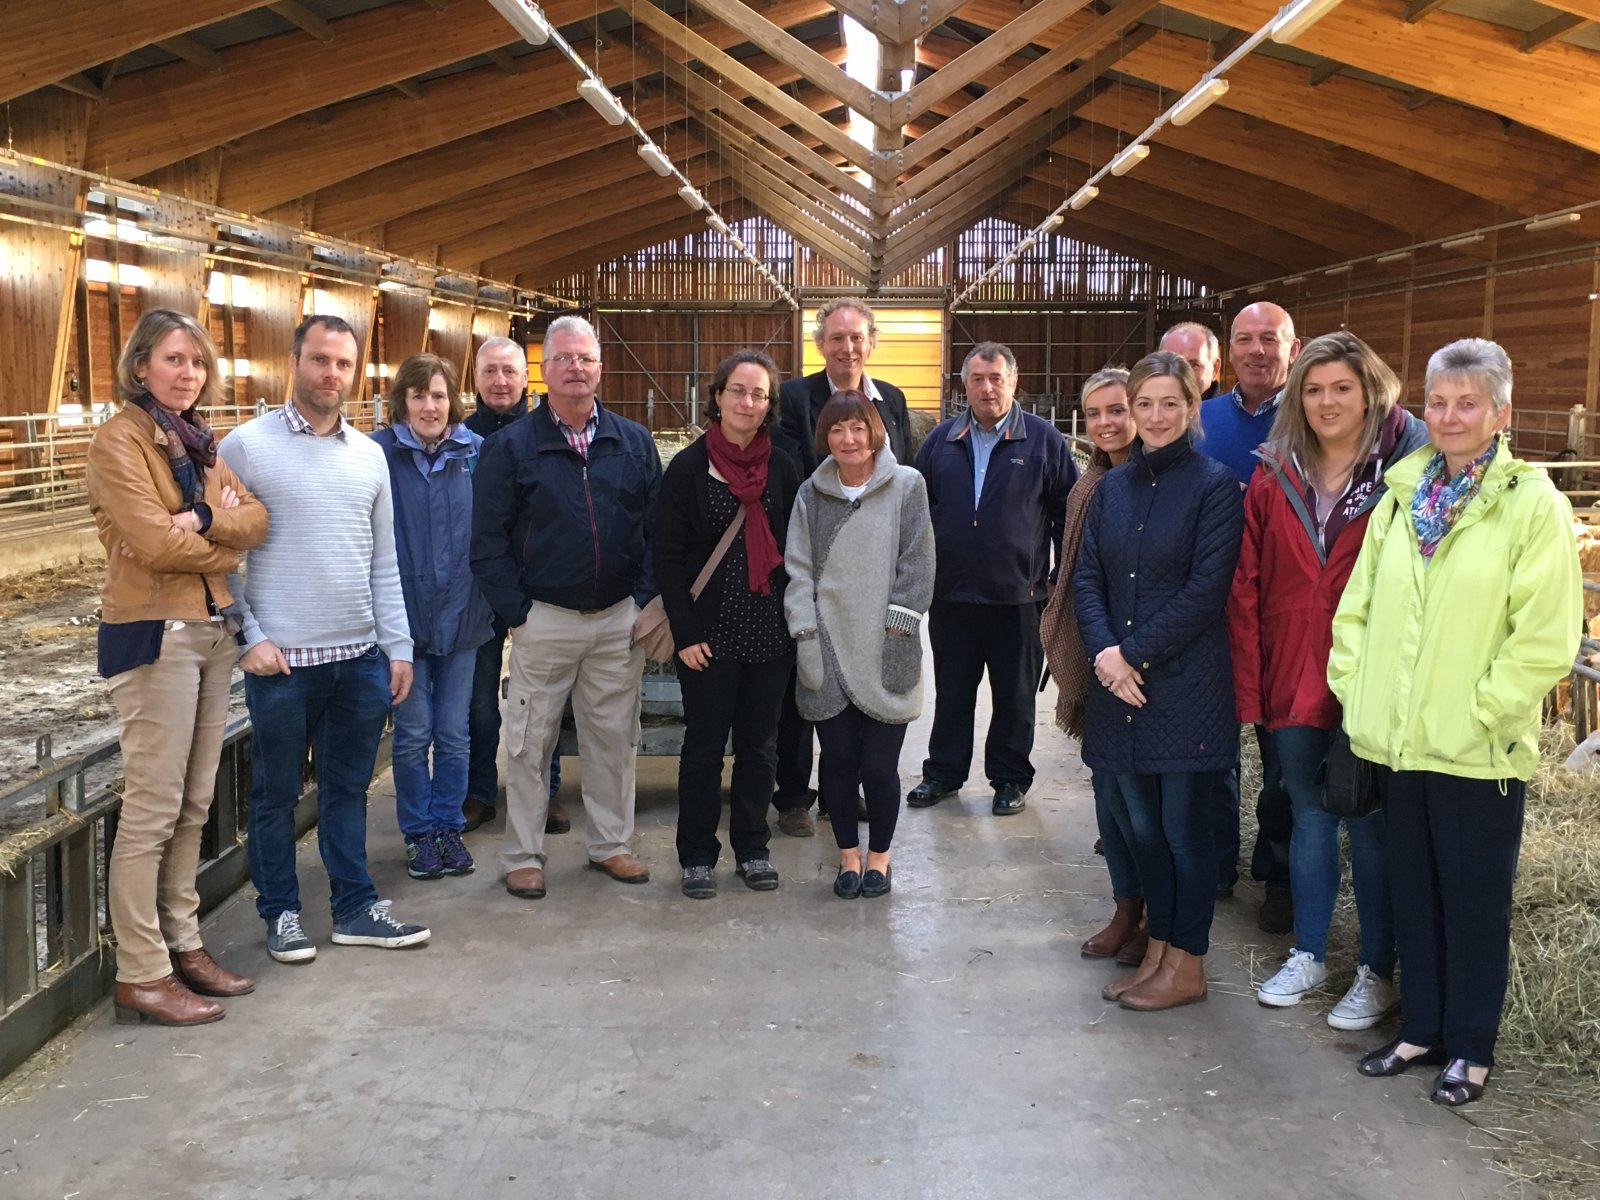 NSA members in the sheep shed at an INRA Research Station